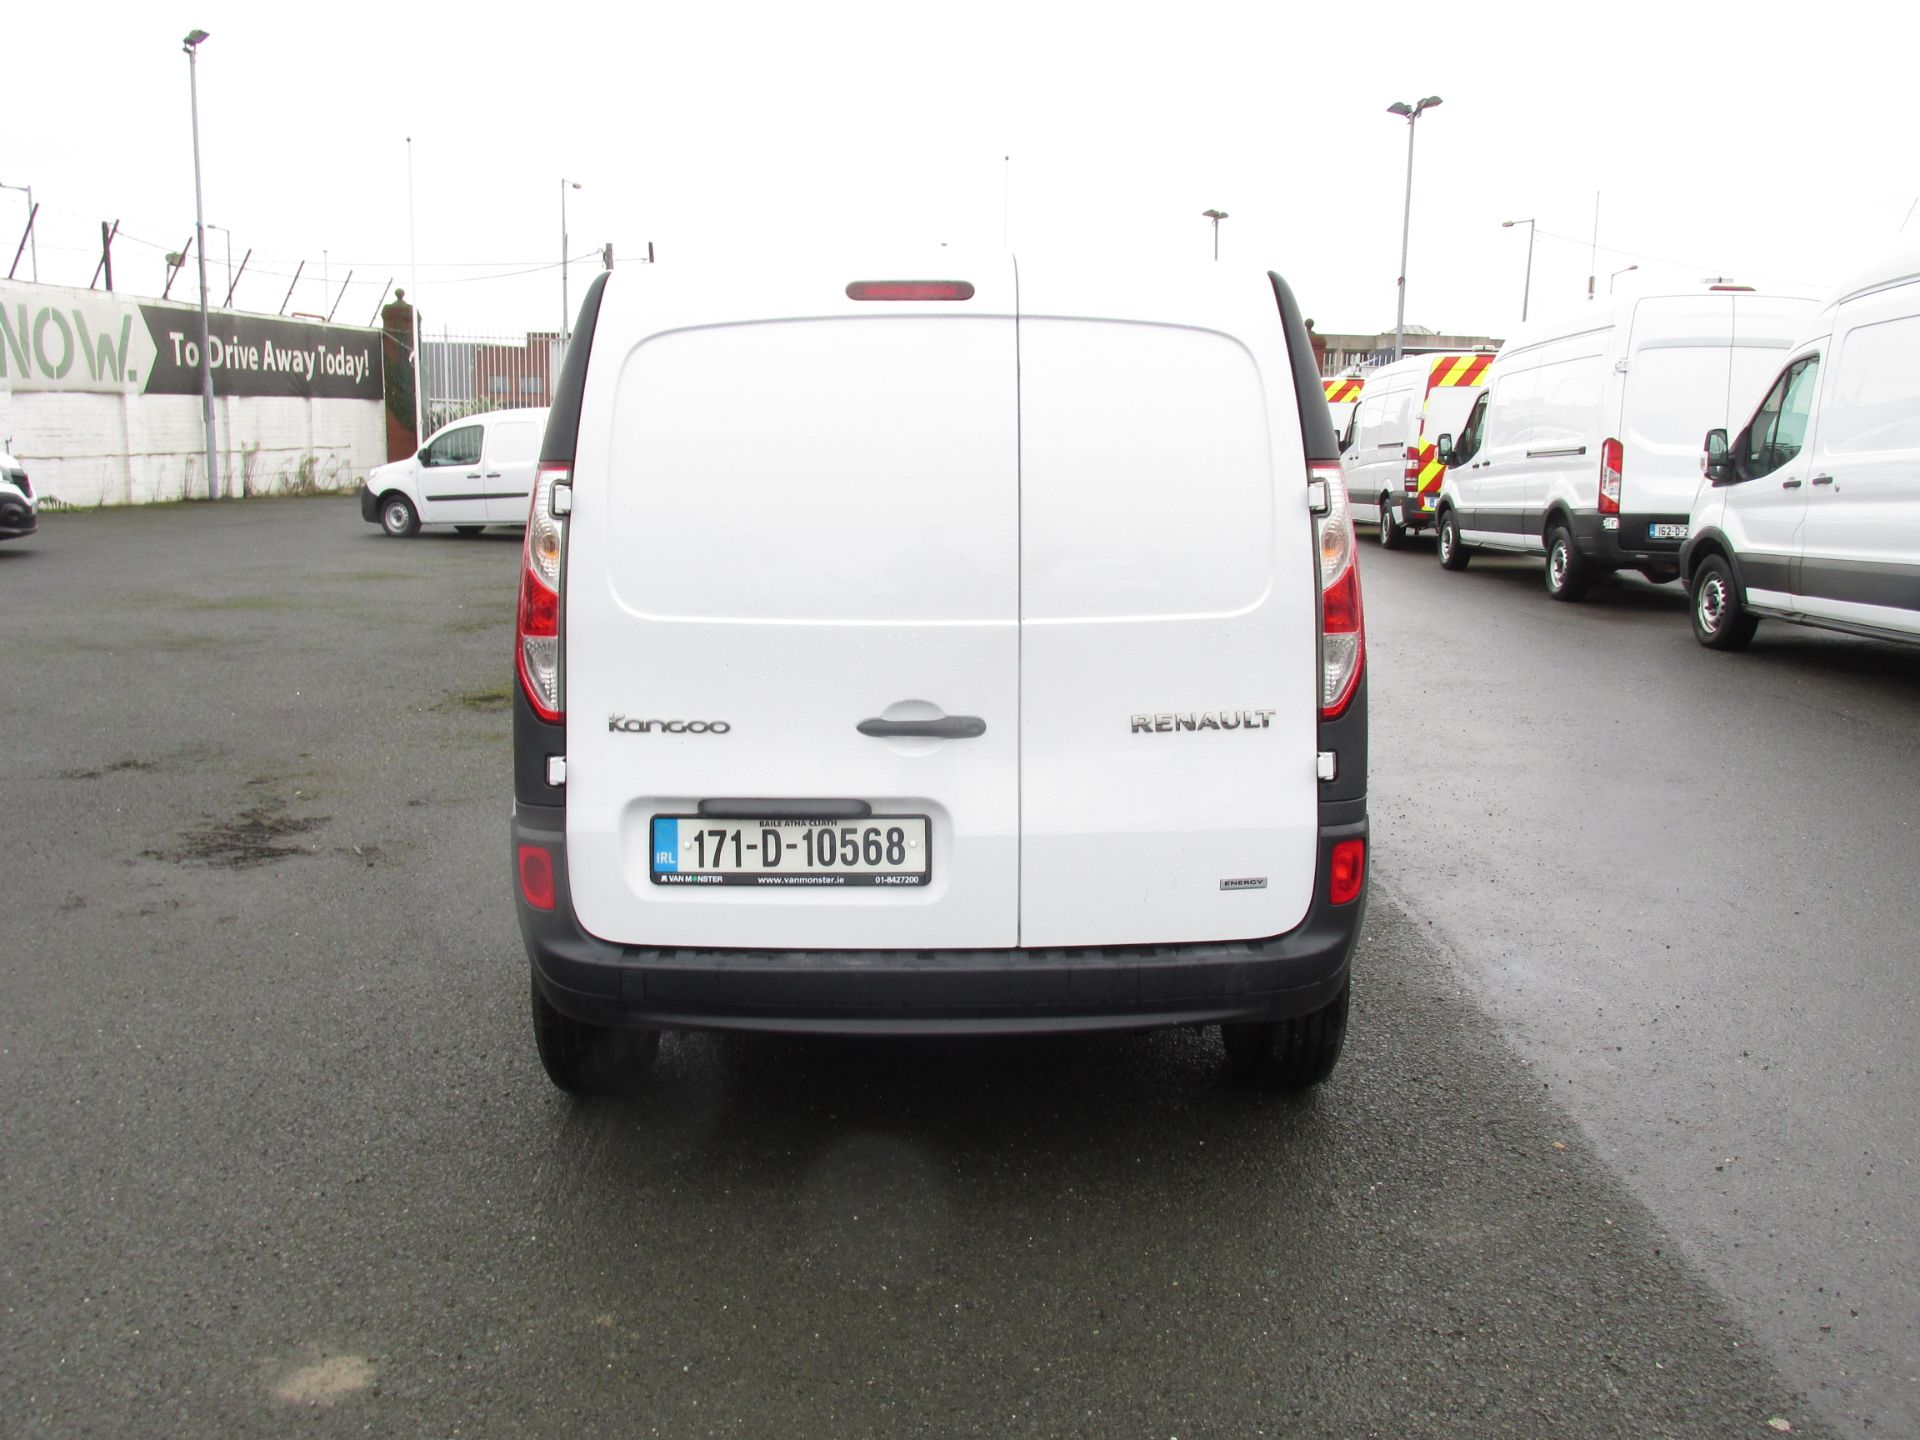 2017 Renault Kangoo ML19 Energy DCI 75 Business 2D click and collect call sales for more info (171D10568) Image 6